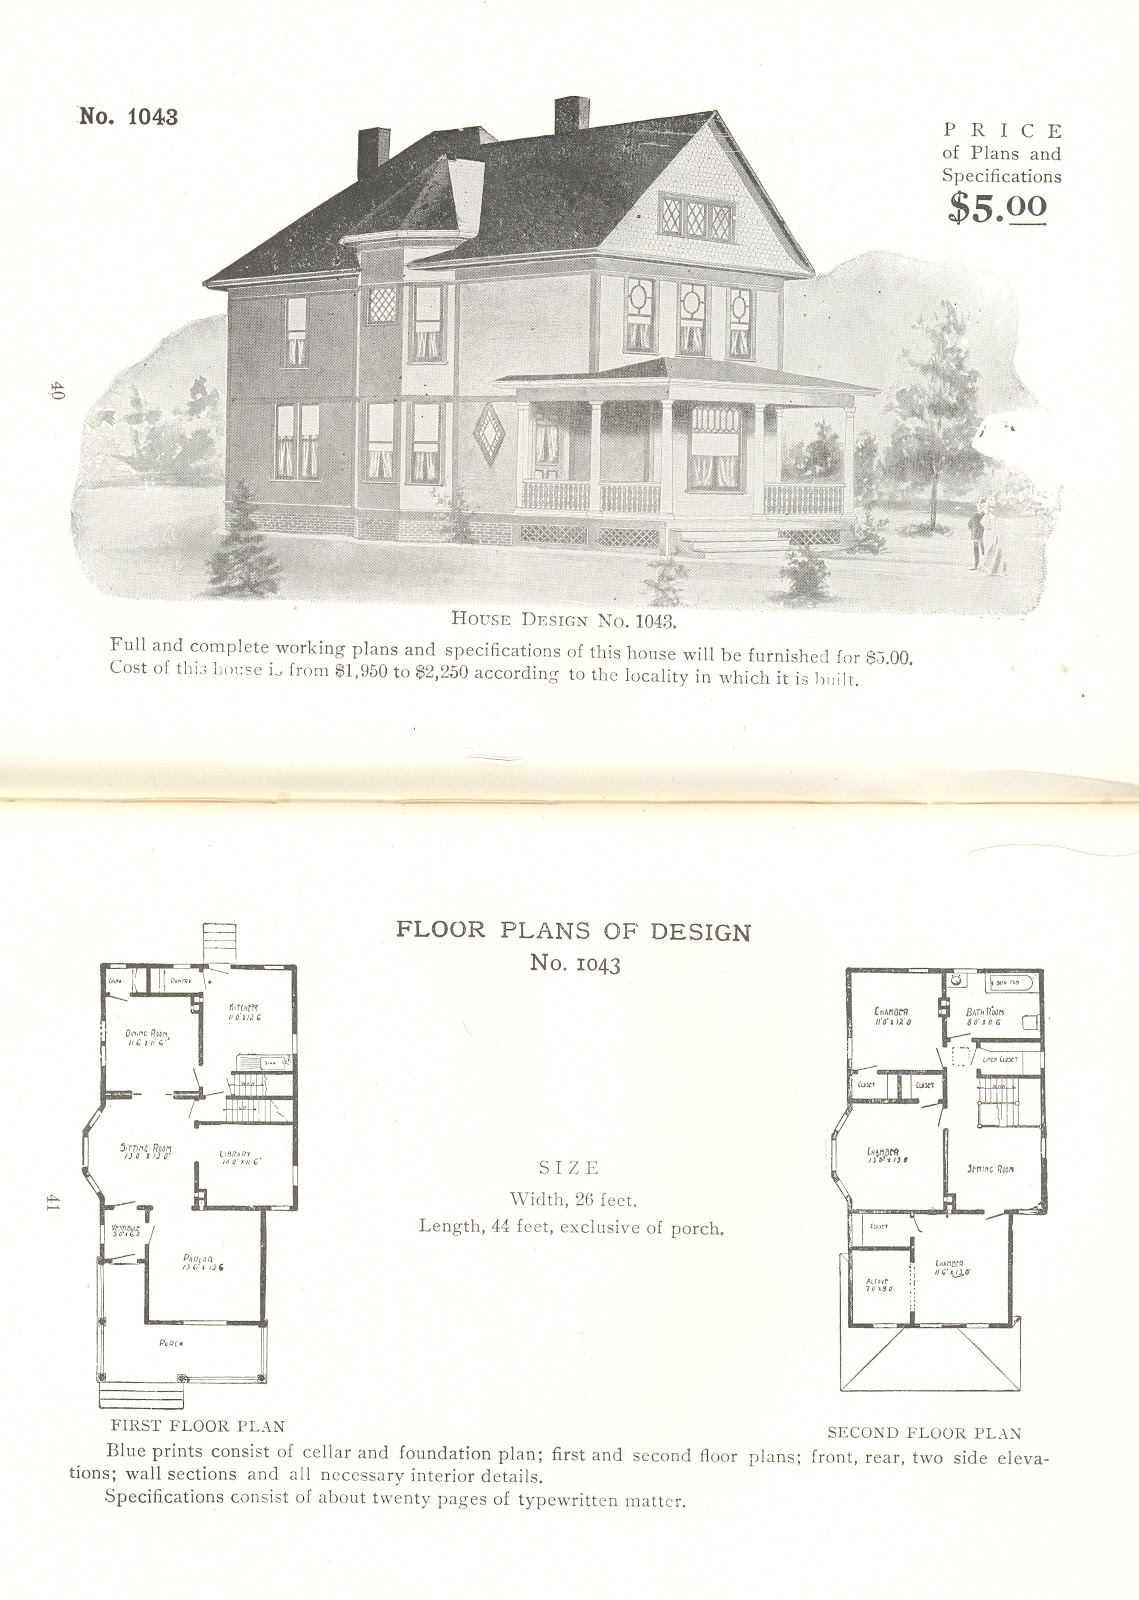 Old photos of architecture: 1908 Radford Architectural ... on wilmington house plans, antique house plans, hanover house plans, french country estate house plans, henderson house plans, alamosa house plans, united states house plans, chesapeake house plans, english french country house plans, small house plans, springfield house plans, new old house plans, birmingham house plans, alexandria house plans, burke house plans, san marcos house plans, little rock house plans, victorian house plans, palmyra house plans, naples house plans,